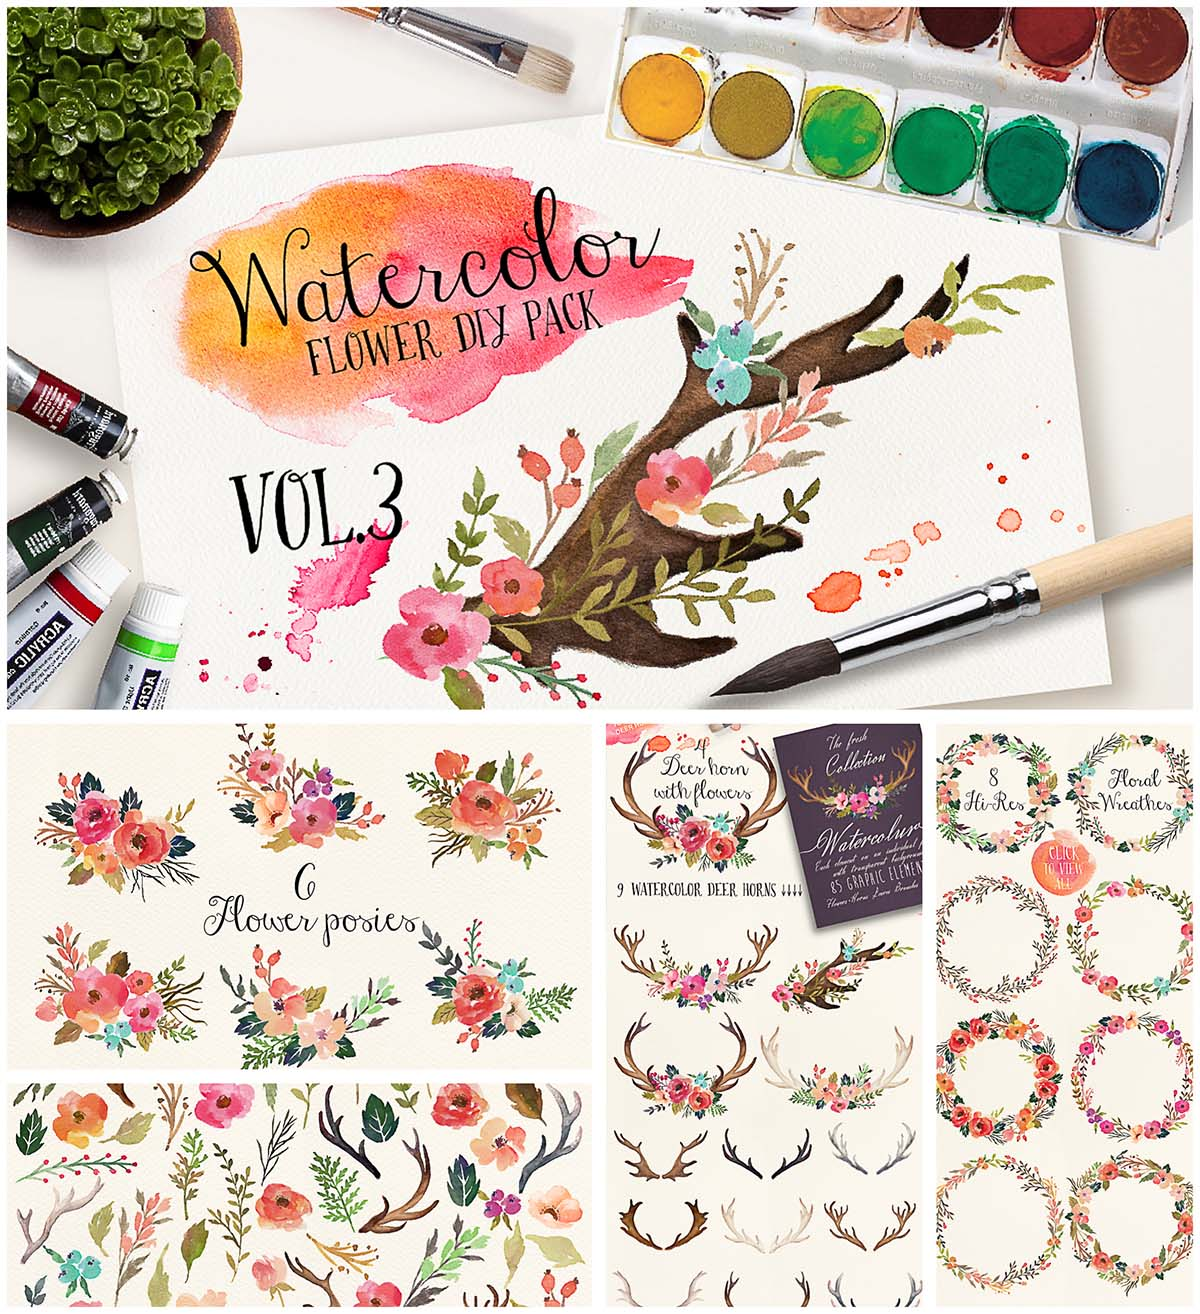 Watercolor DIY flowers and horns illustration